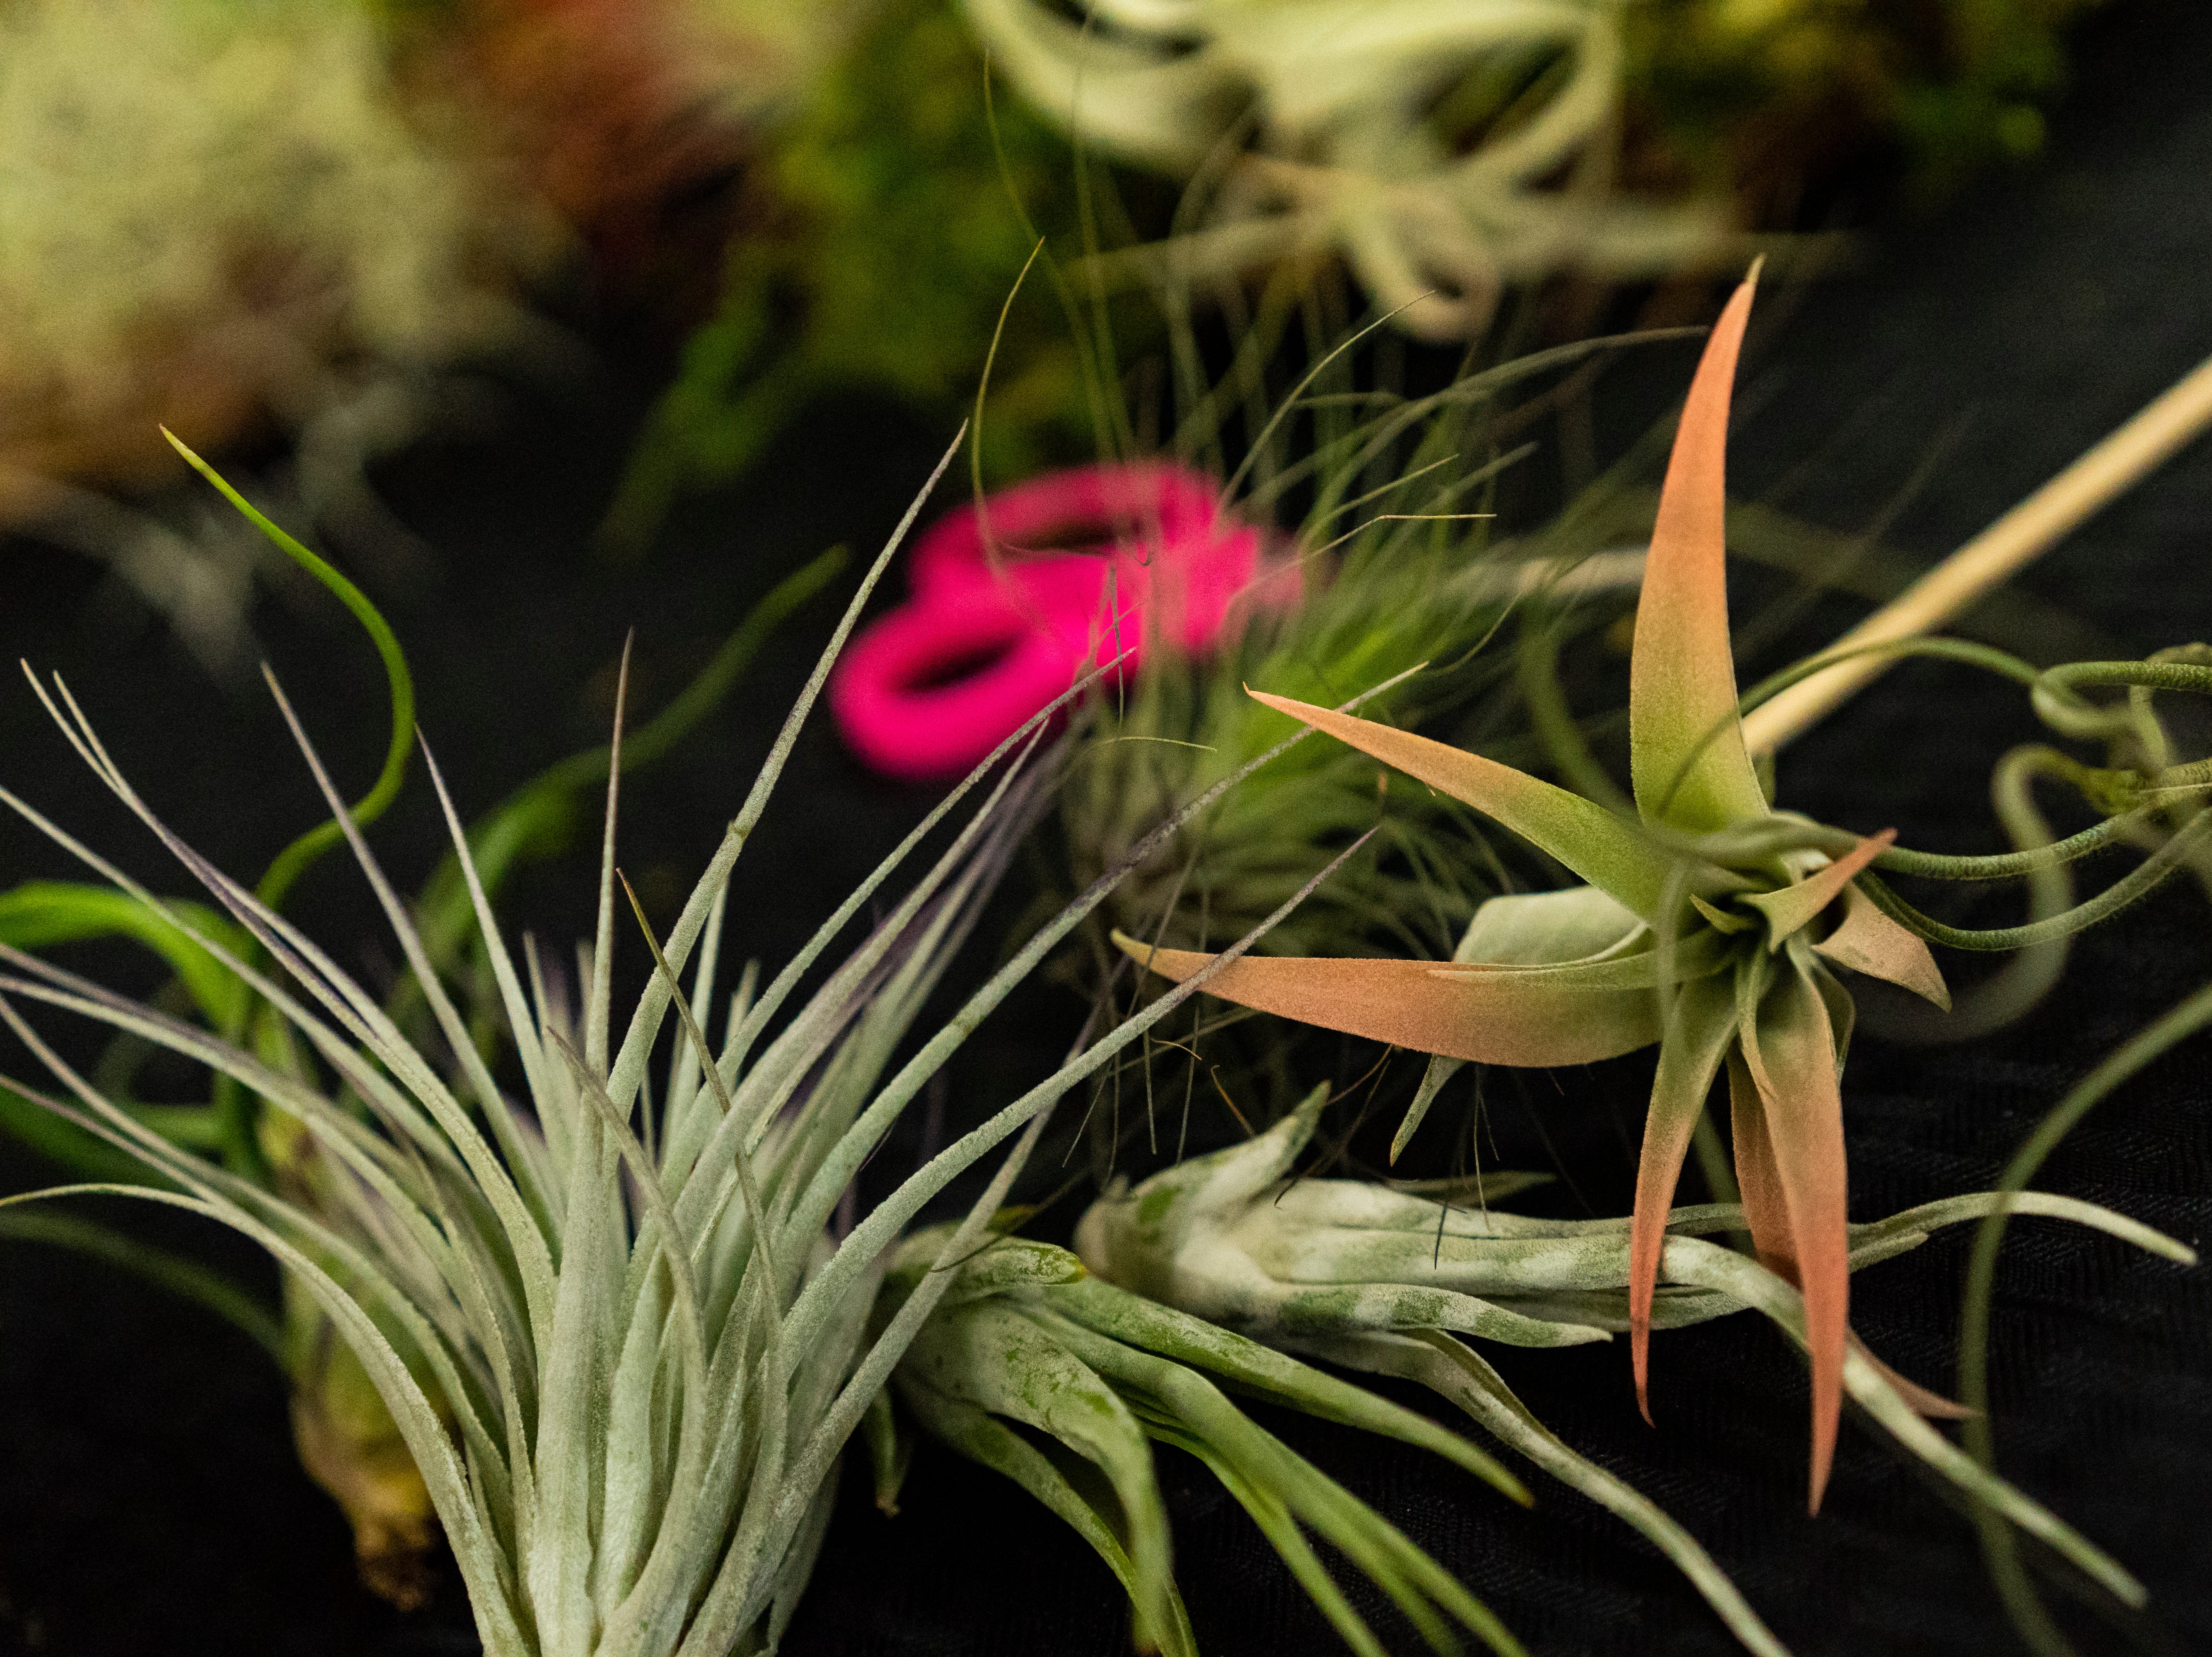 Air plant lay scattered on the demonstration table as Joel Toledo, the 11 year owner of Green Door Nursery in East Naples gathers material to make a holiday wreath with the air plants on Tuesday, Nov. 20, 2018. Toledo will be offering a minute hands-on class for $60 come December.